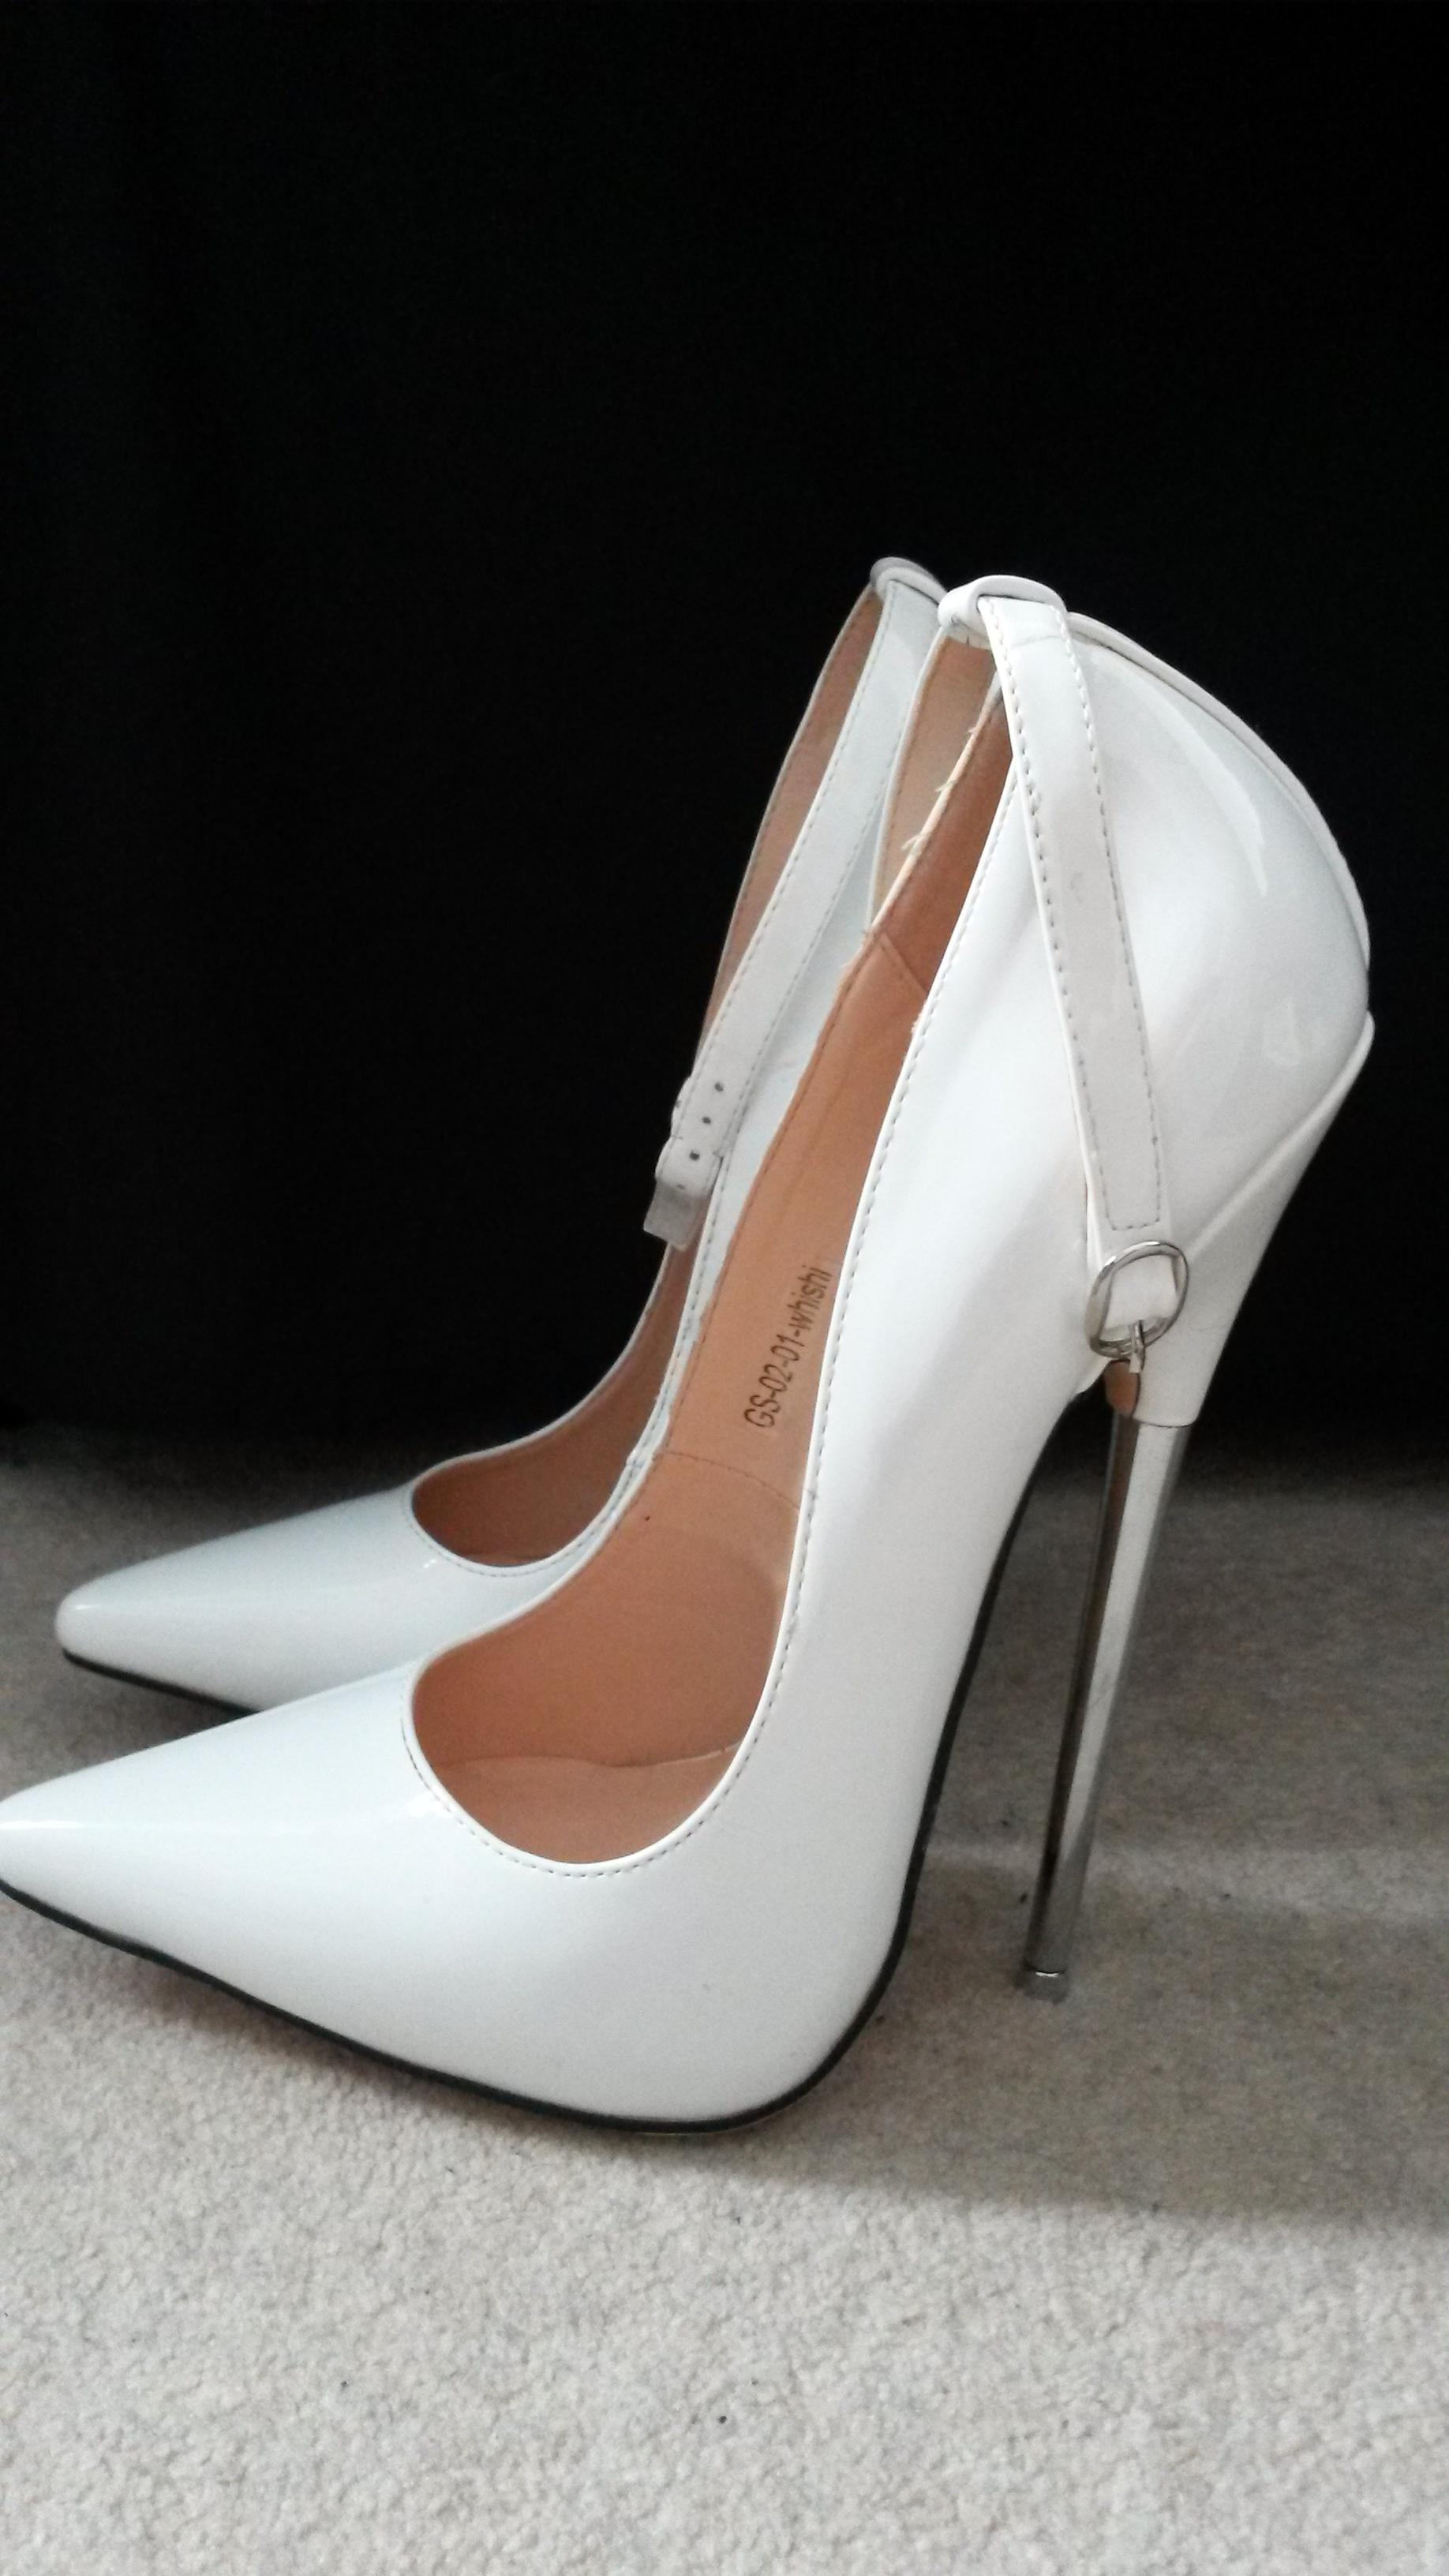 Shoe Sites For Heels